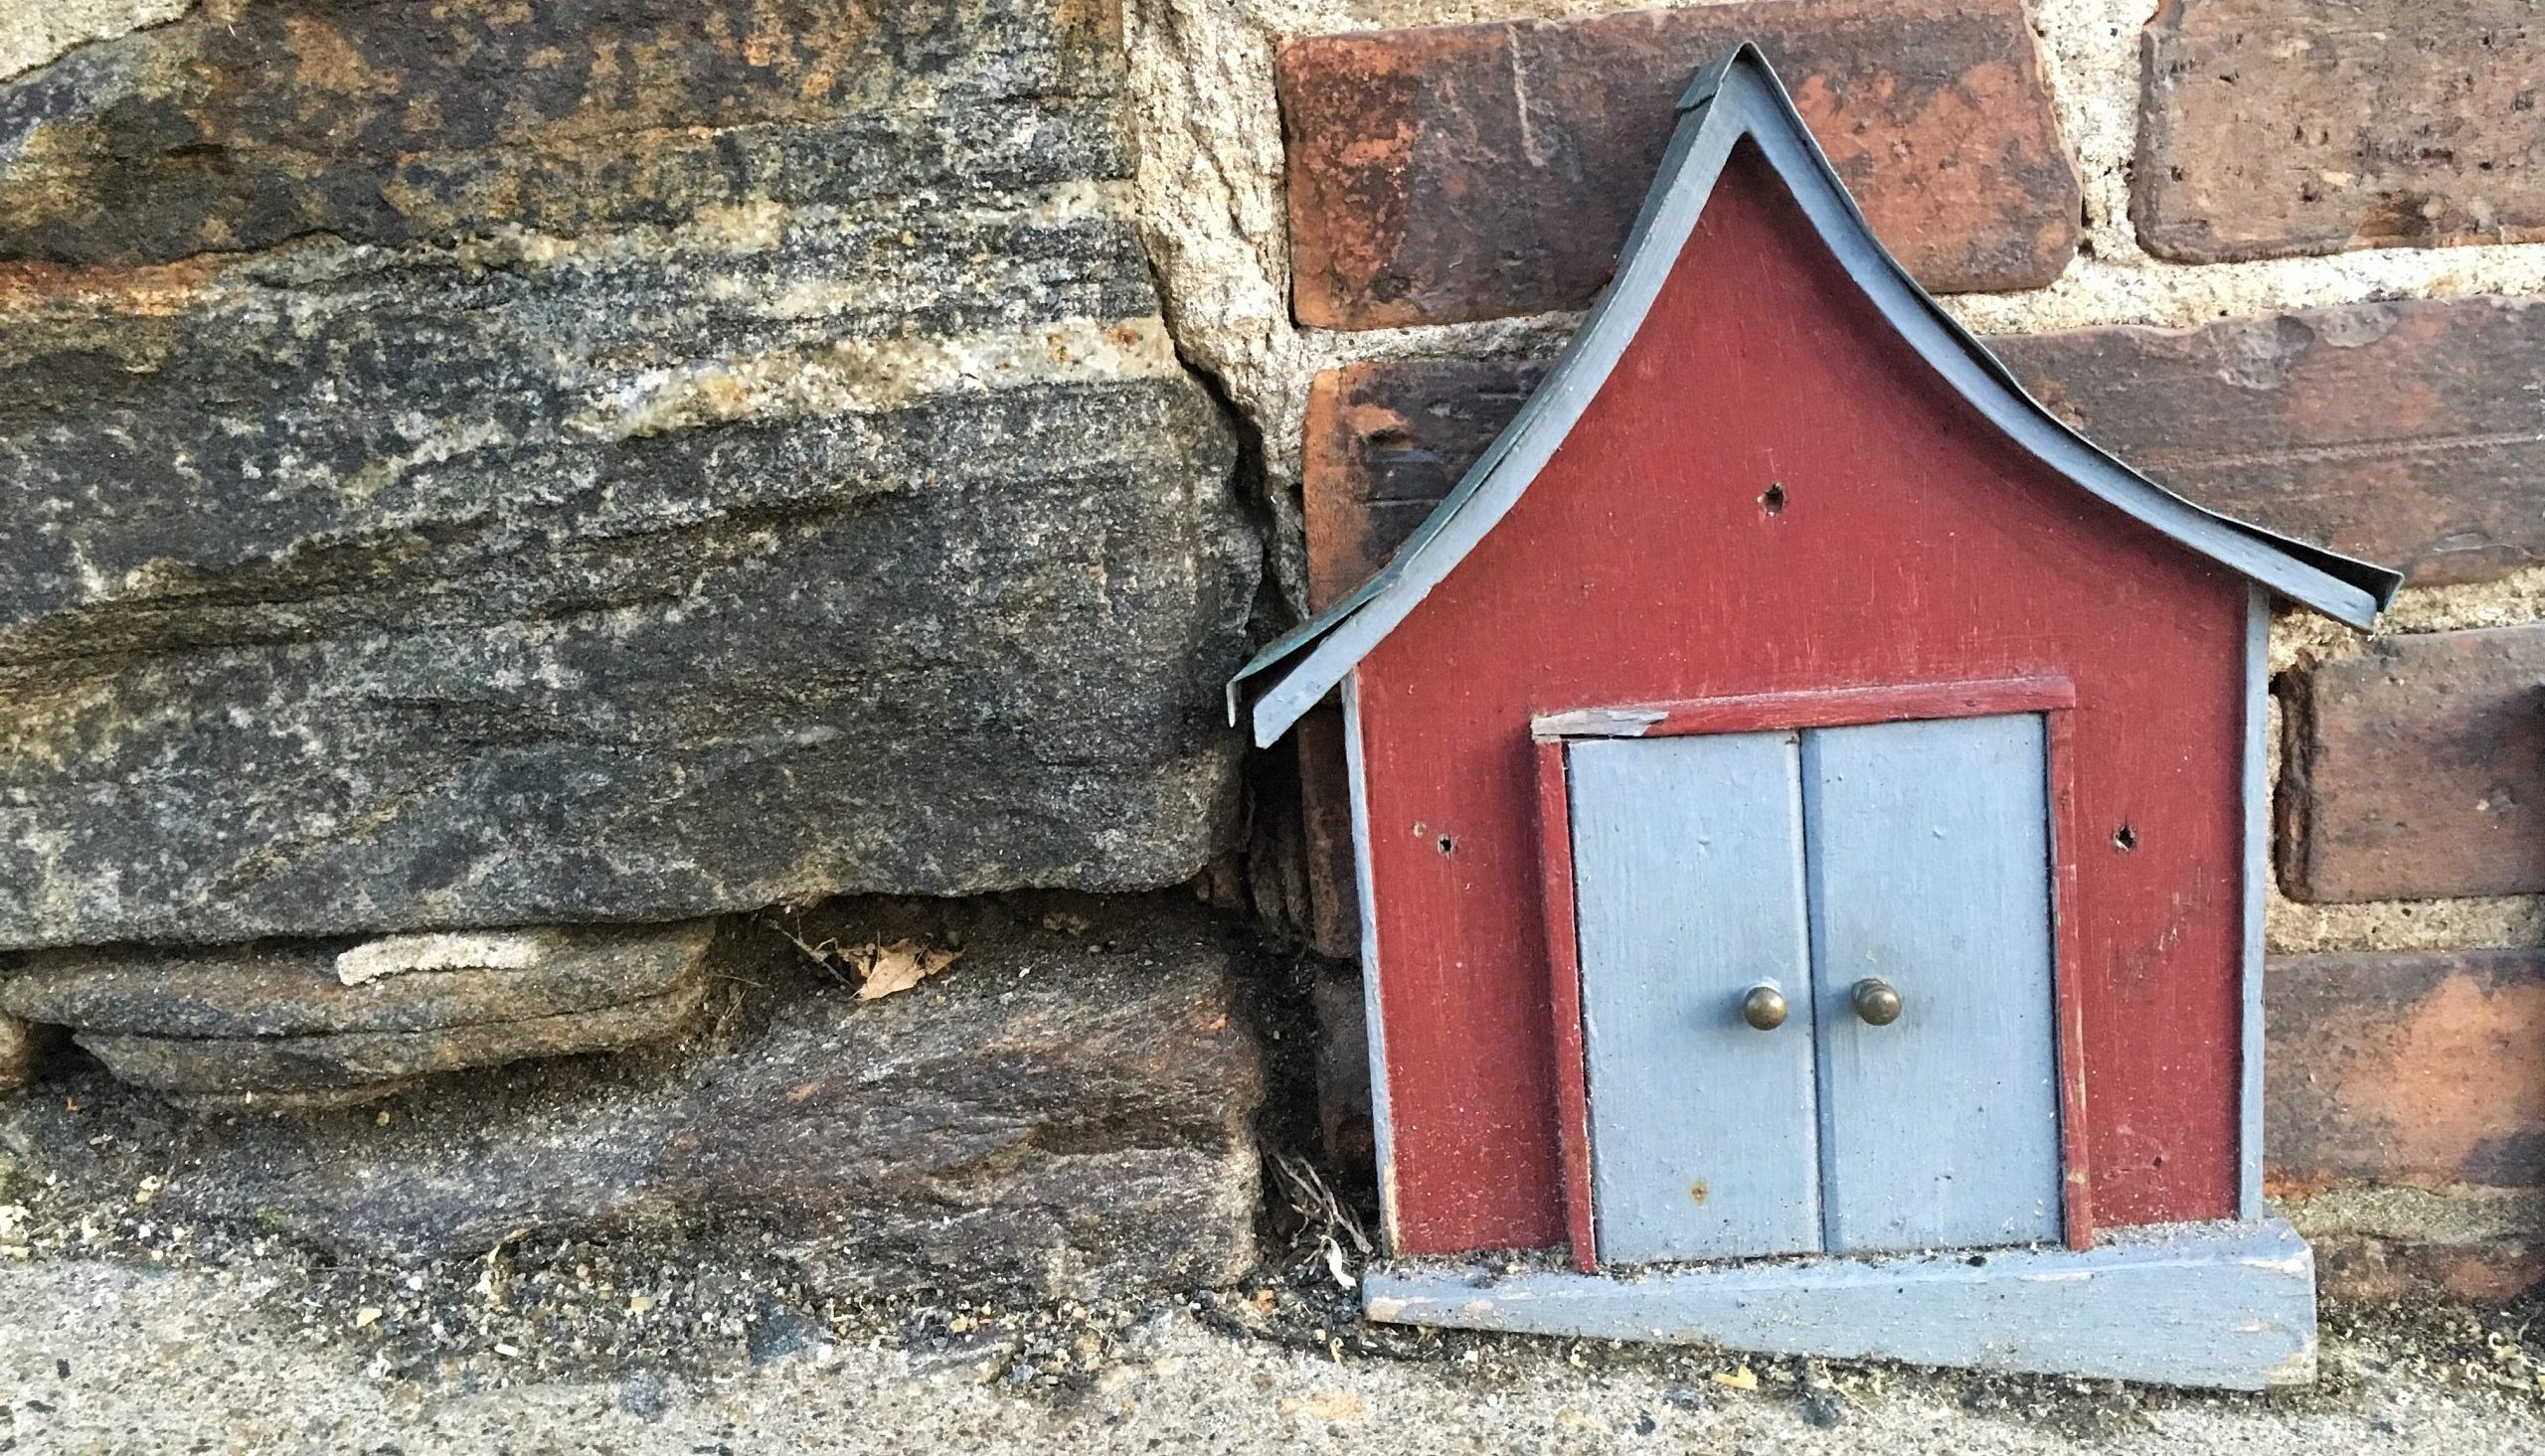 Wounded Sparrow Seeking Home: Intro to a Queer, Married Pastor